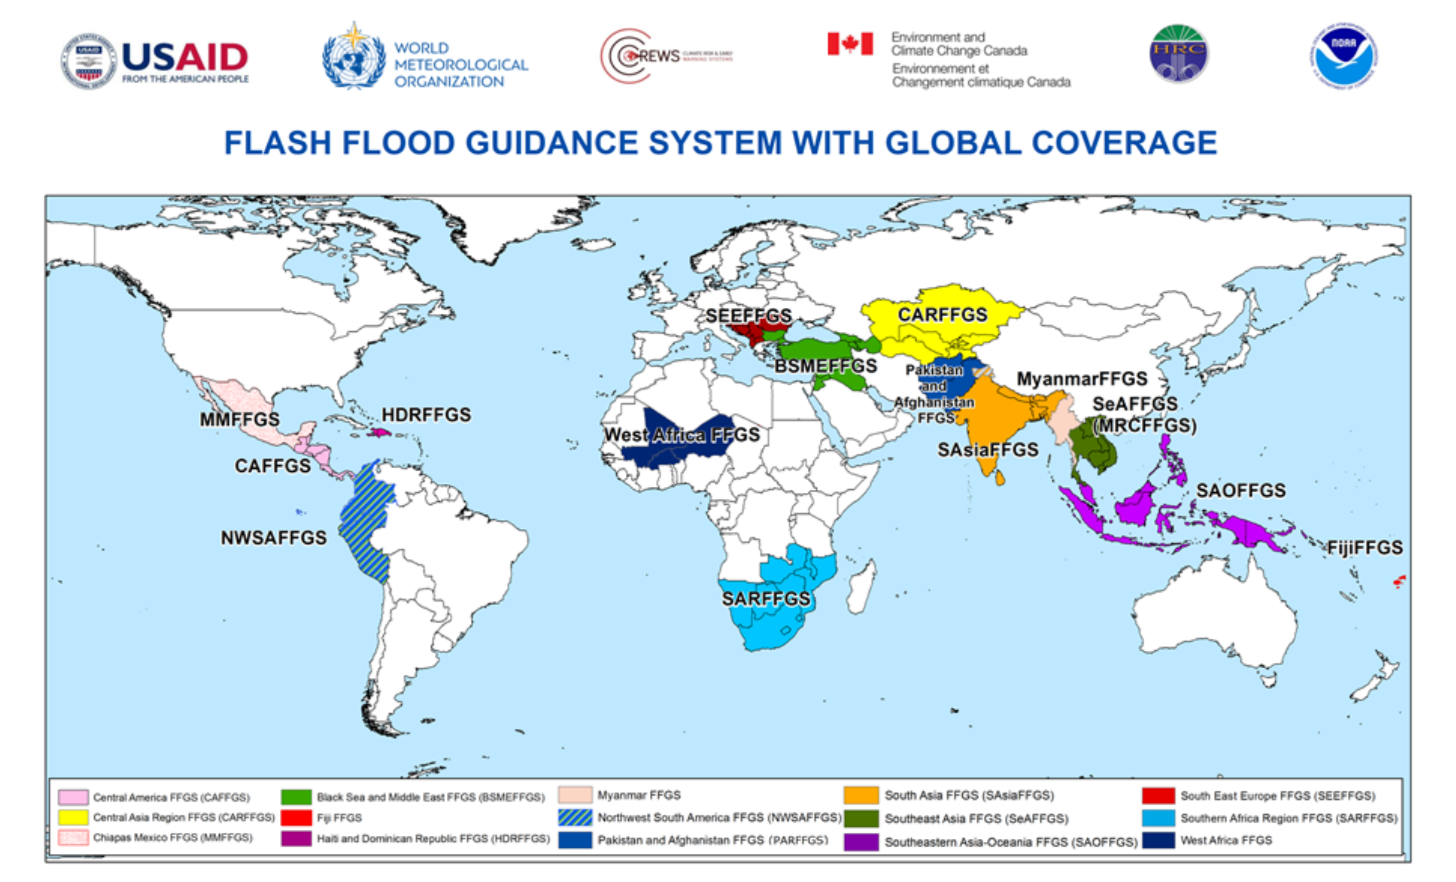 FFGS with Global Coverage